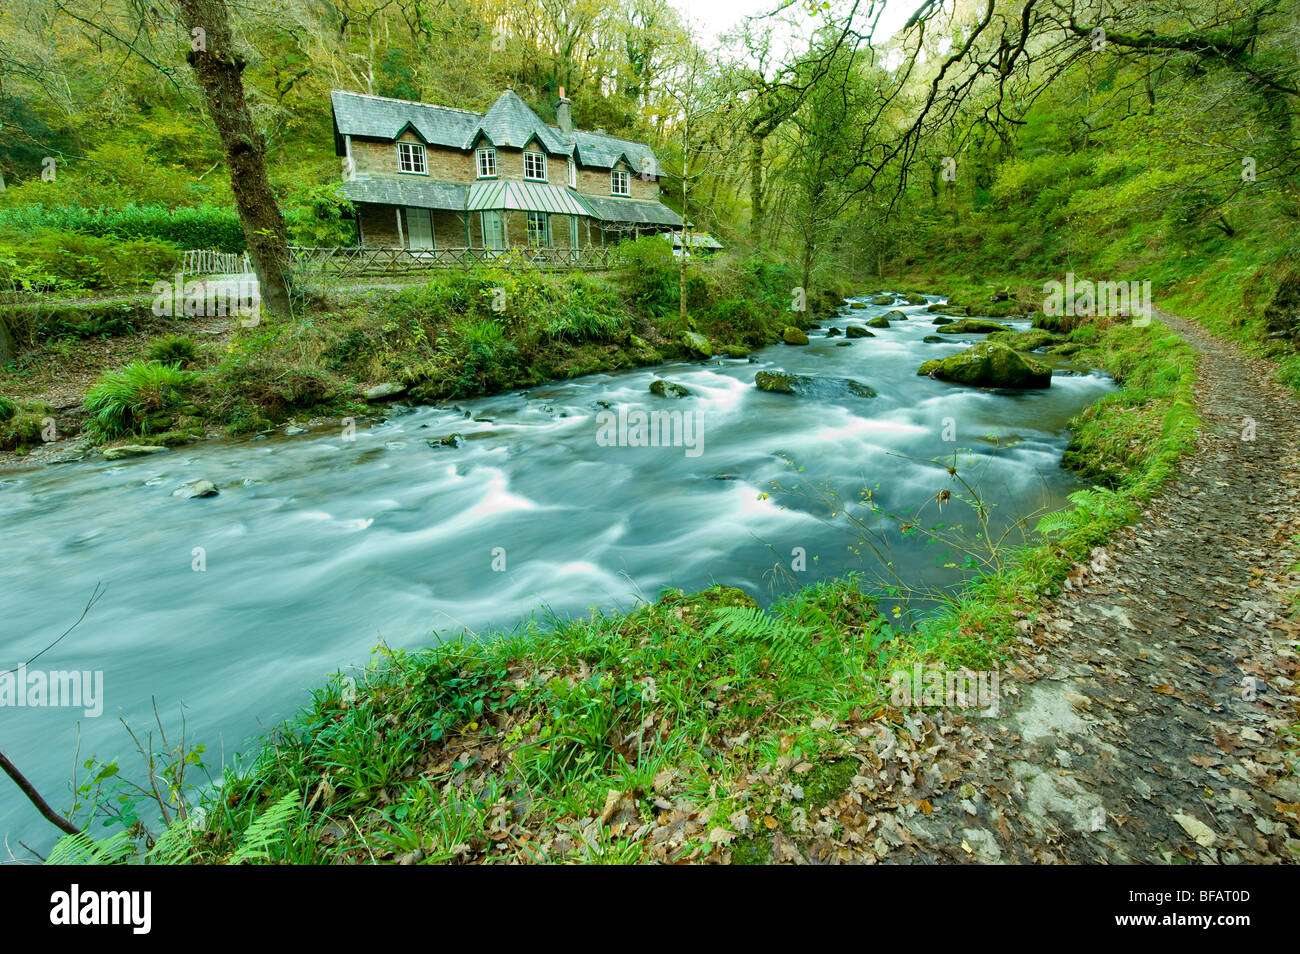 Watersmeet house on the river lyn in full spate after rain, watersmeet National Trust property, Devon - Stock Image